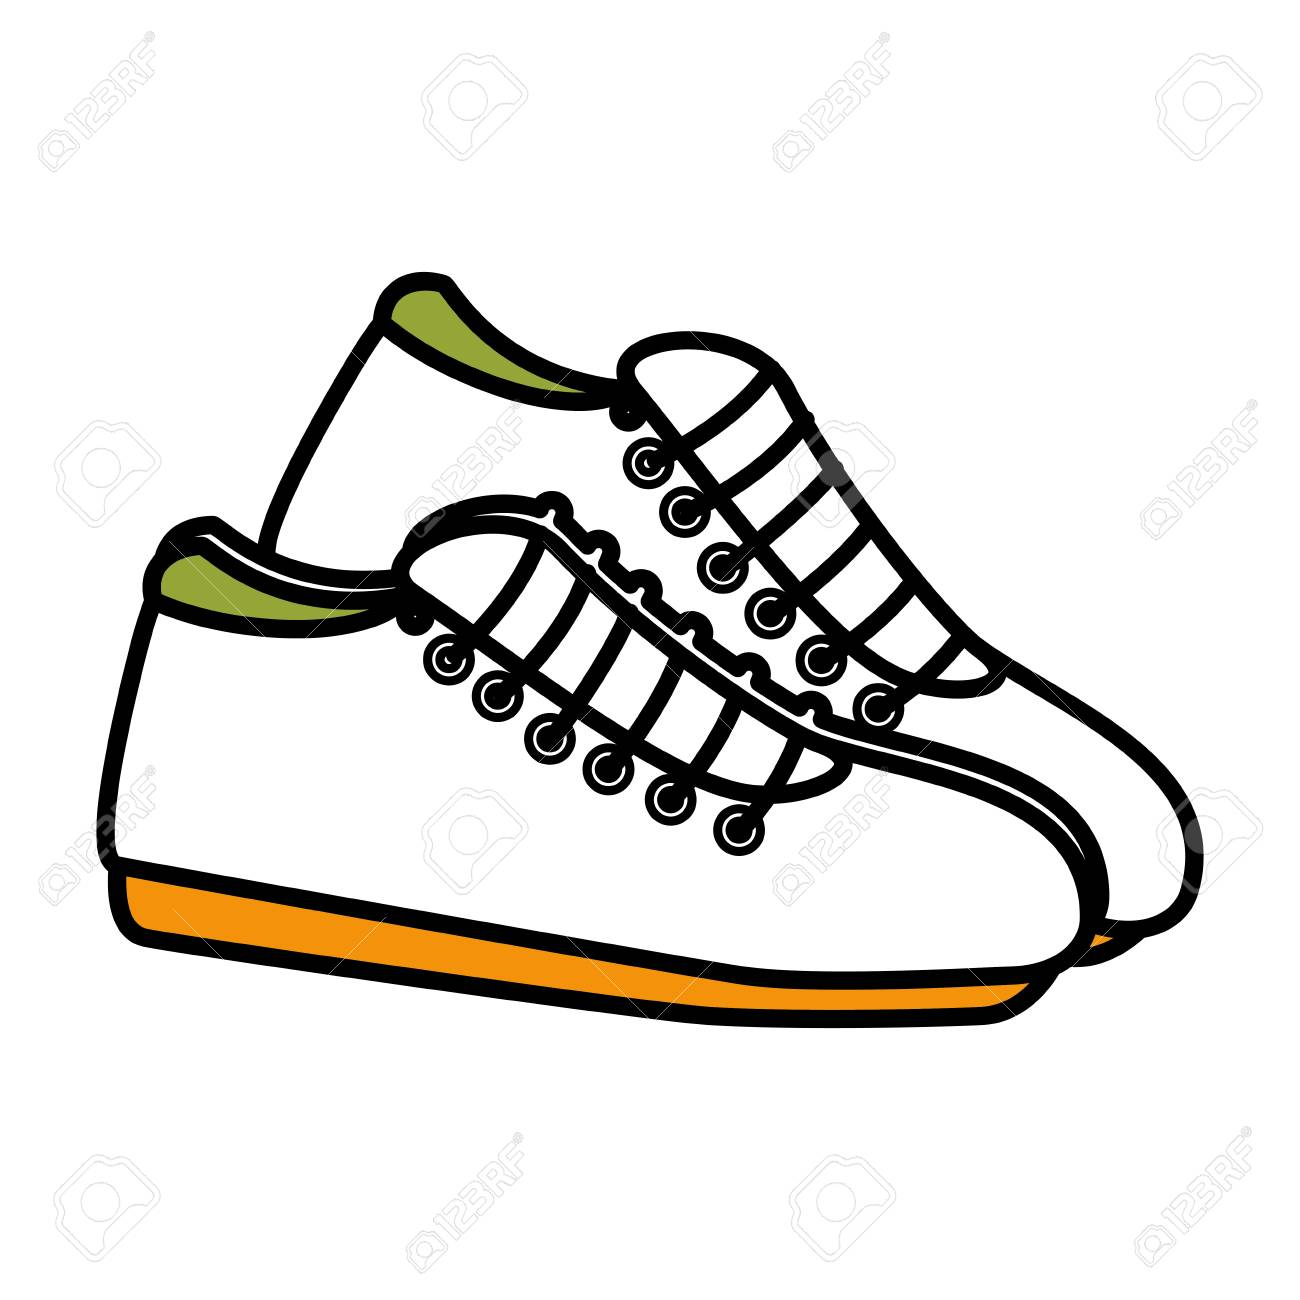 066820f683db tennis shoes isolated icon vector illustration design Stock Vector -  78438386